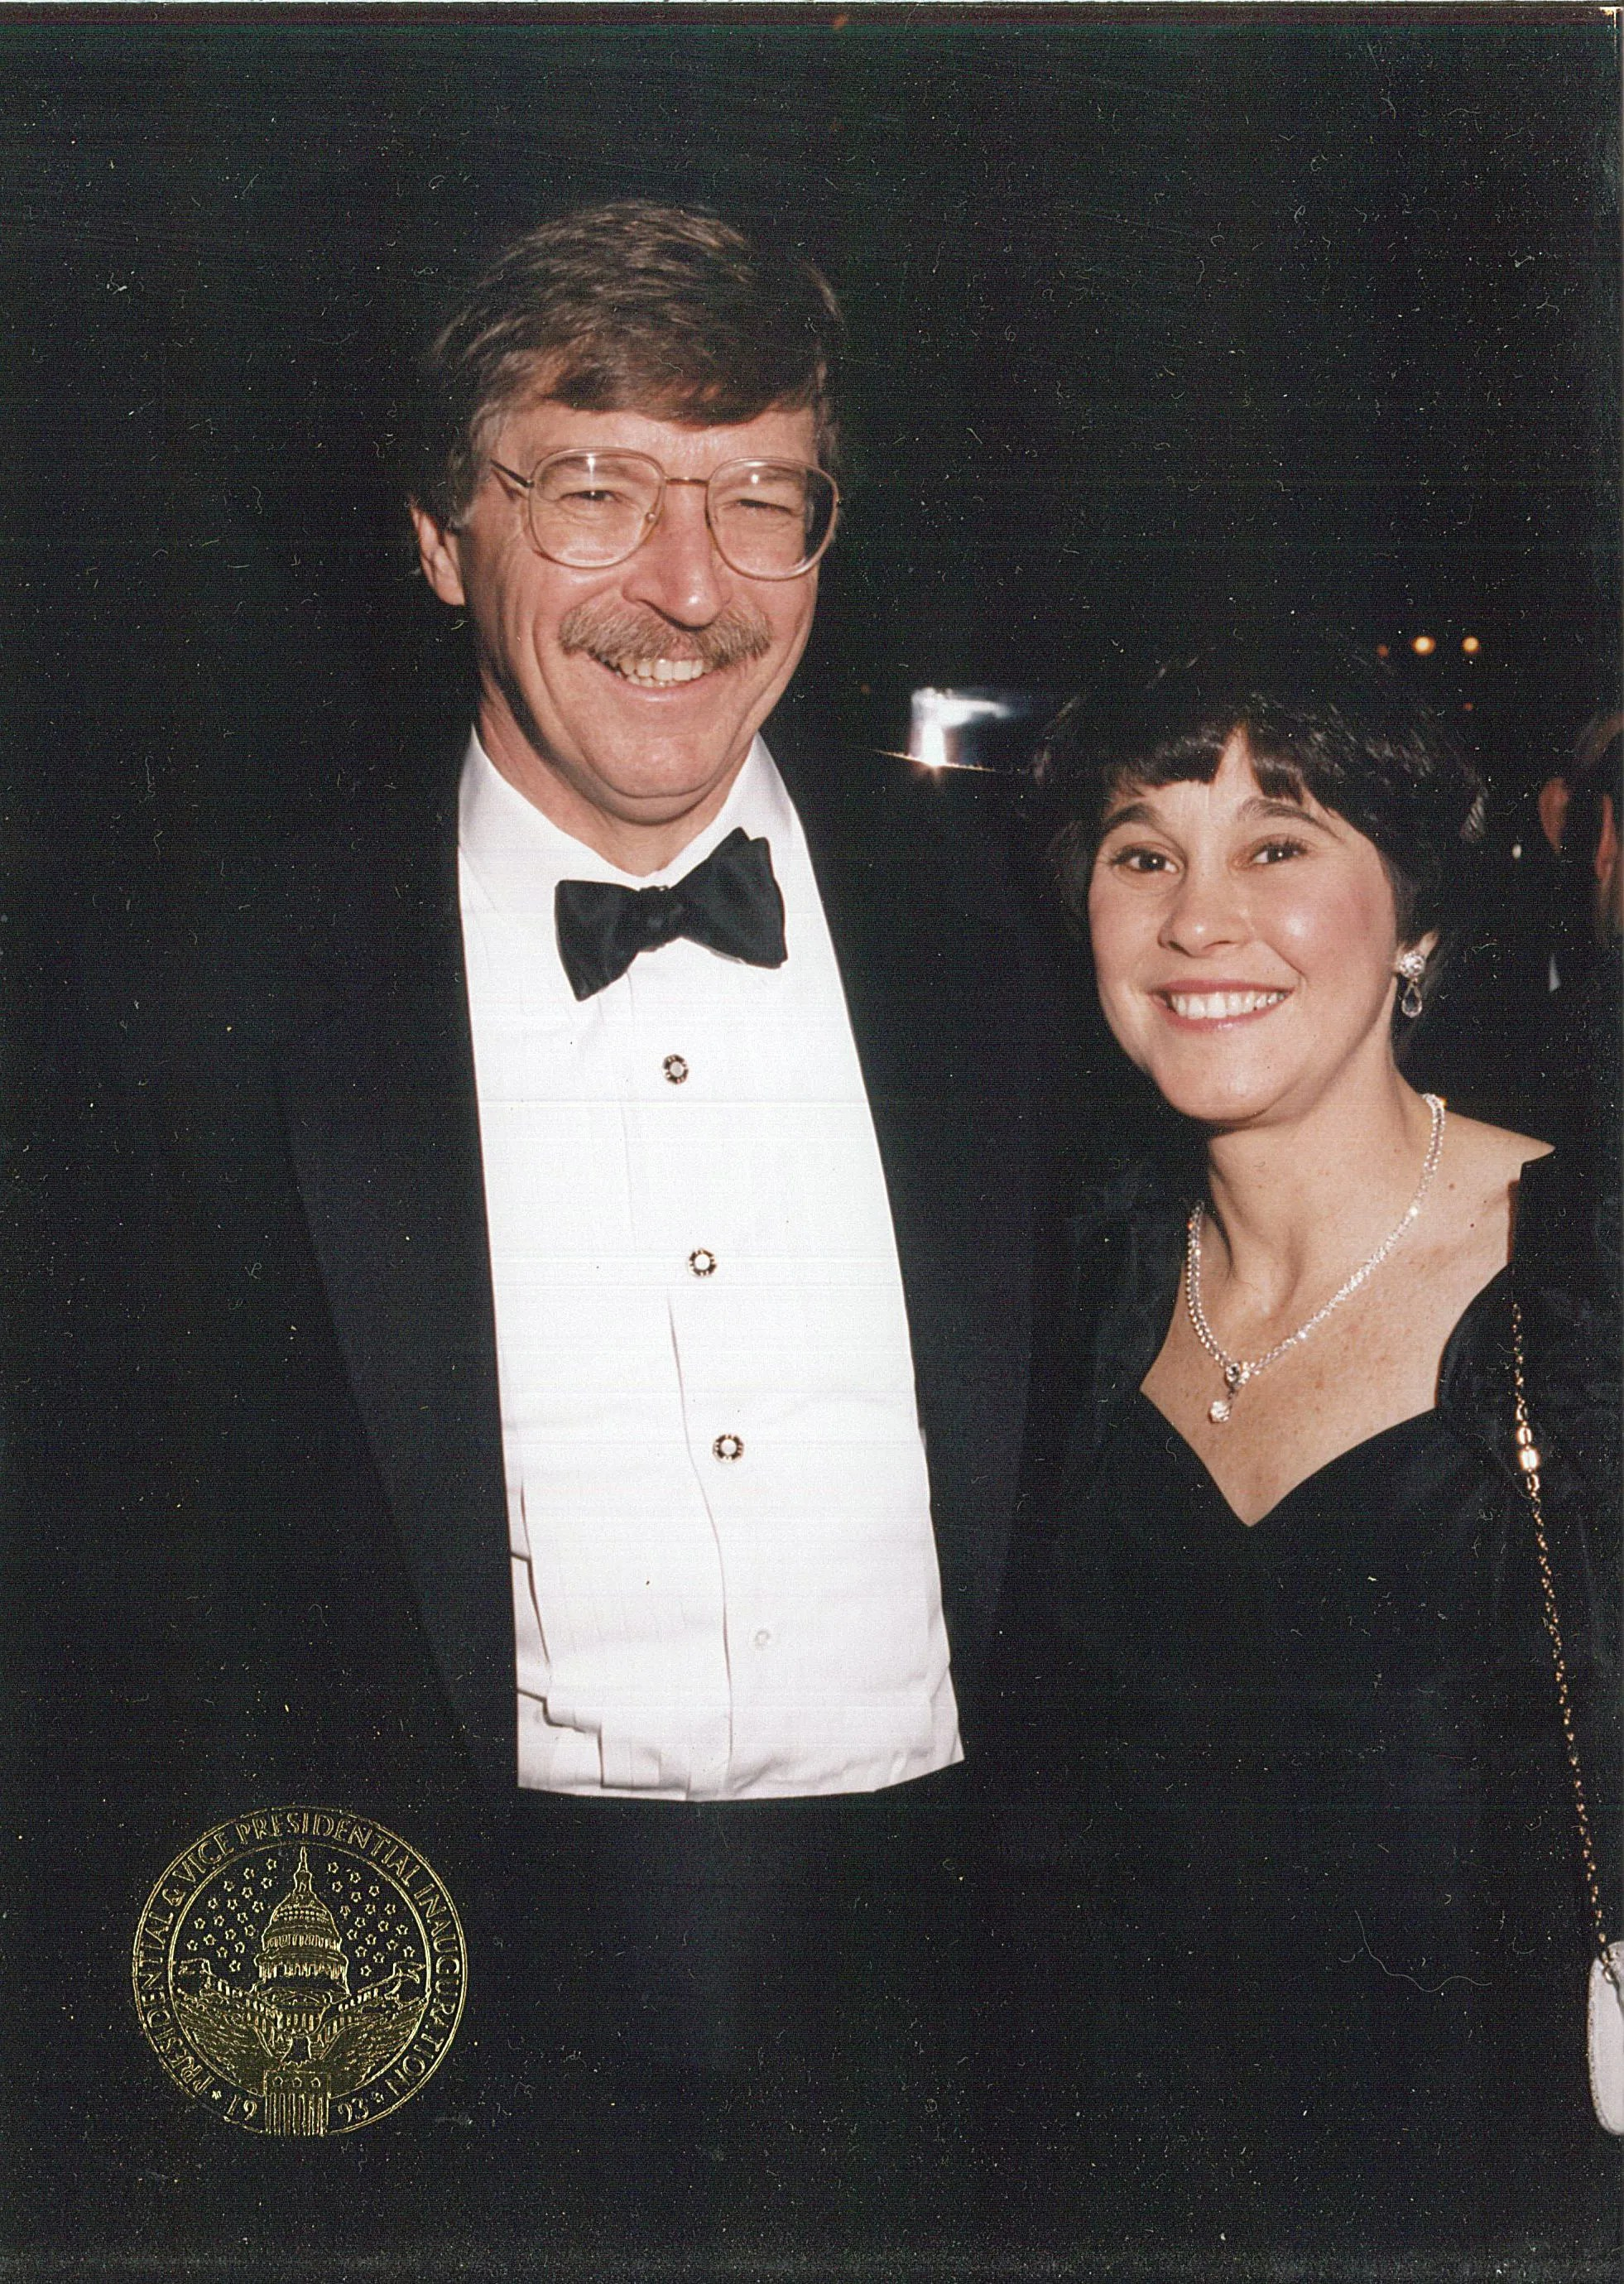 Bender and wife, Anne, at Presidential Inauguration.